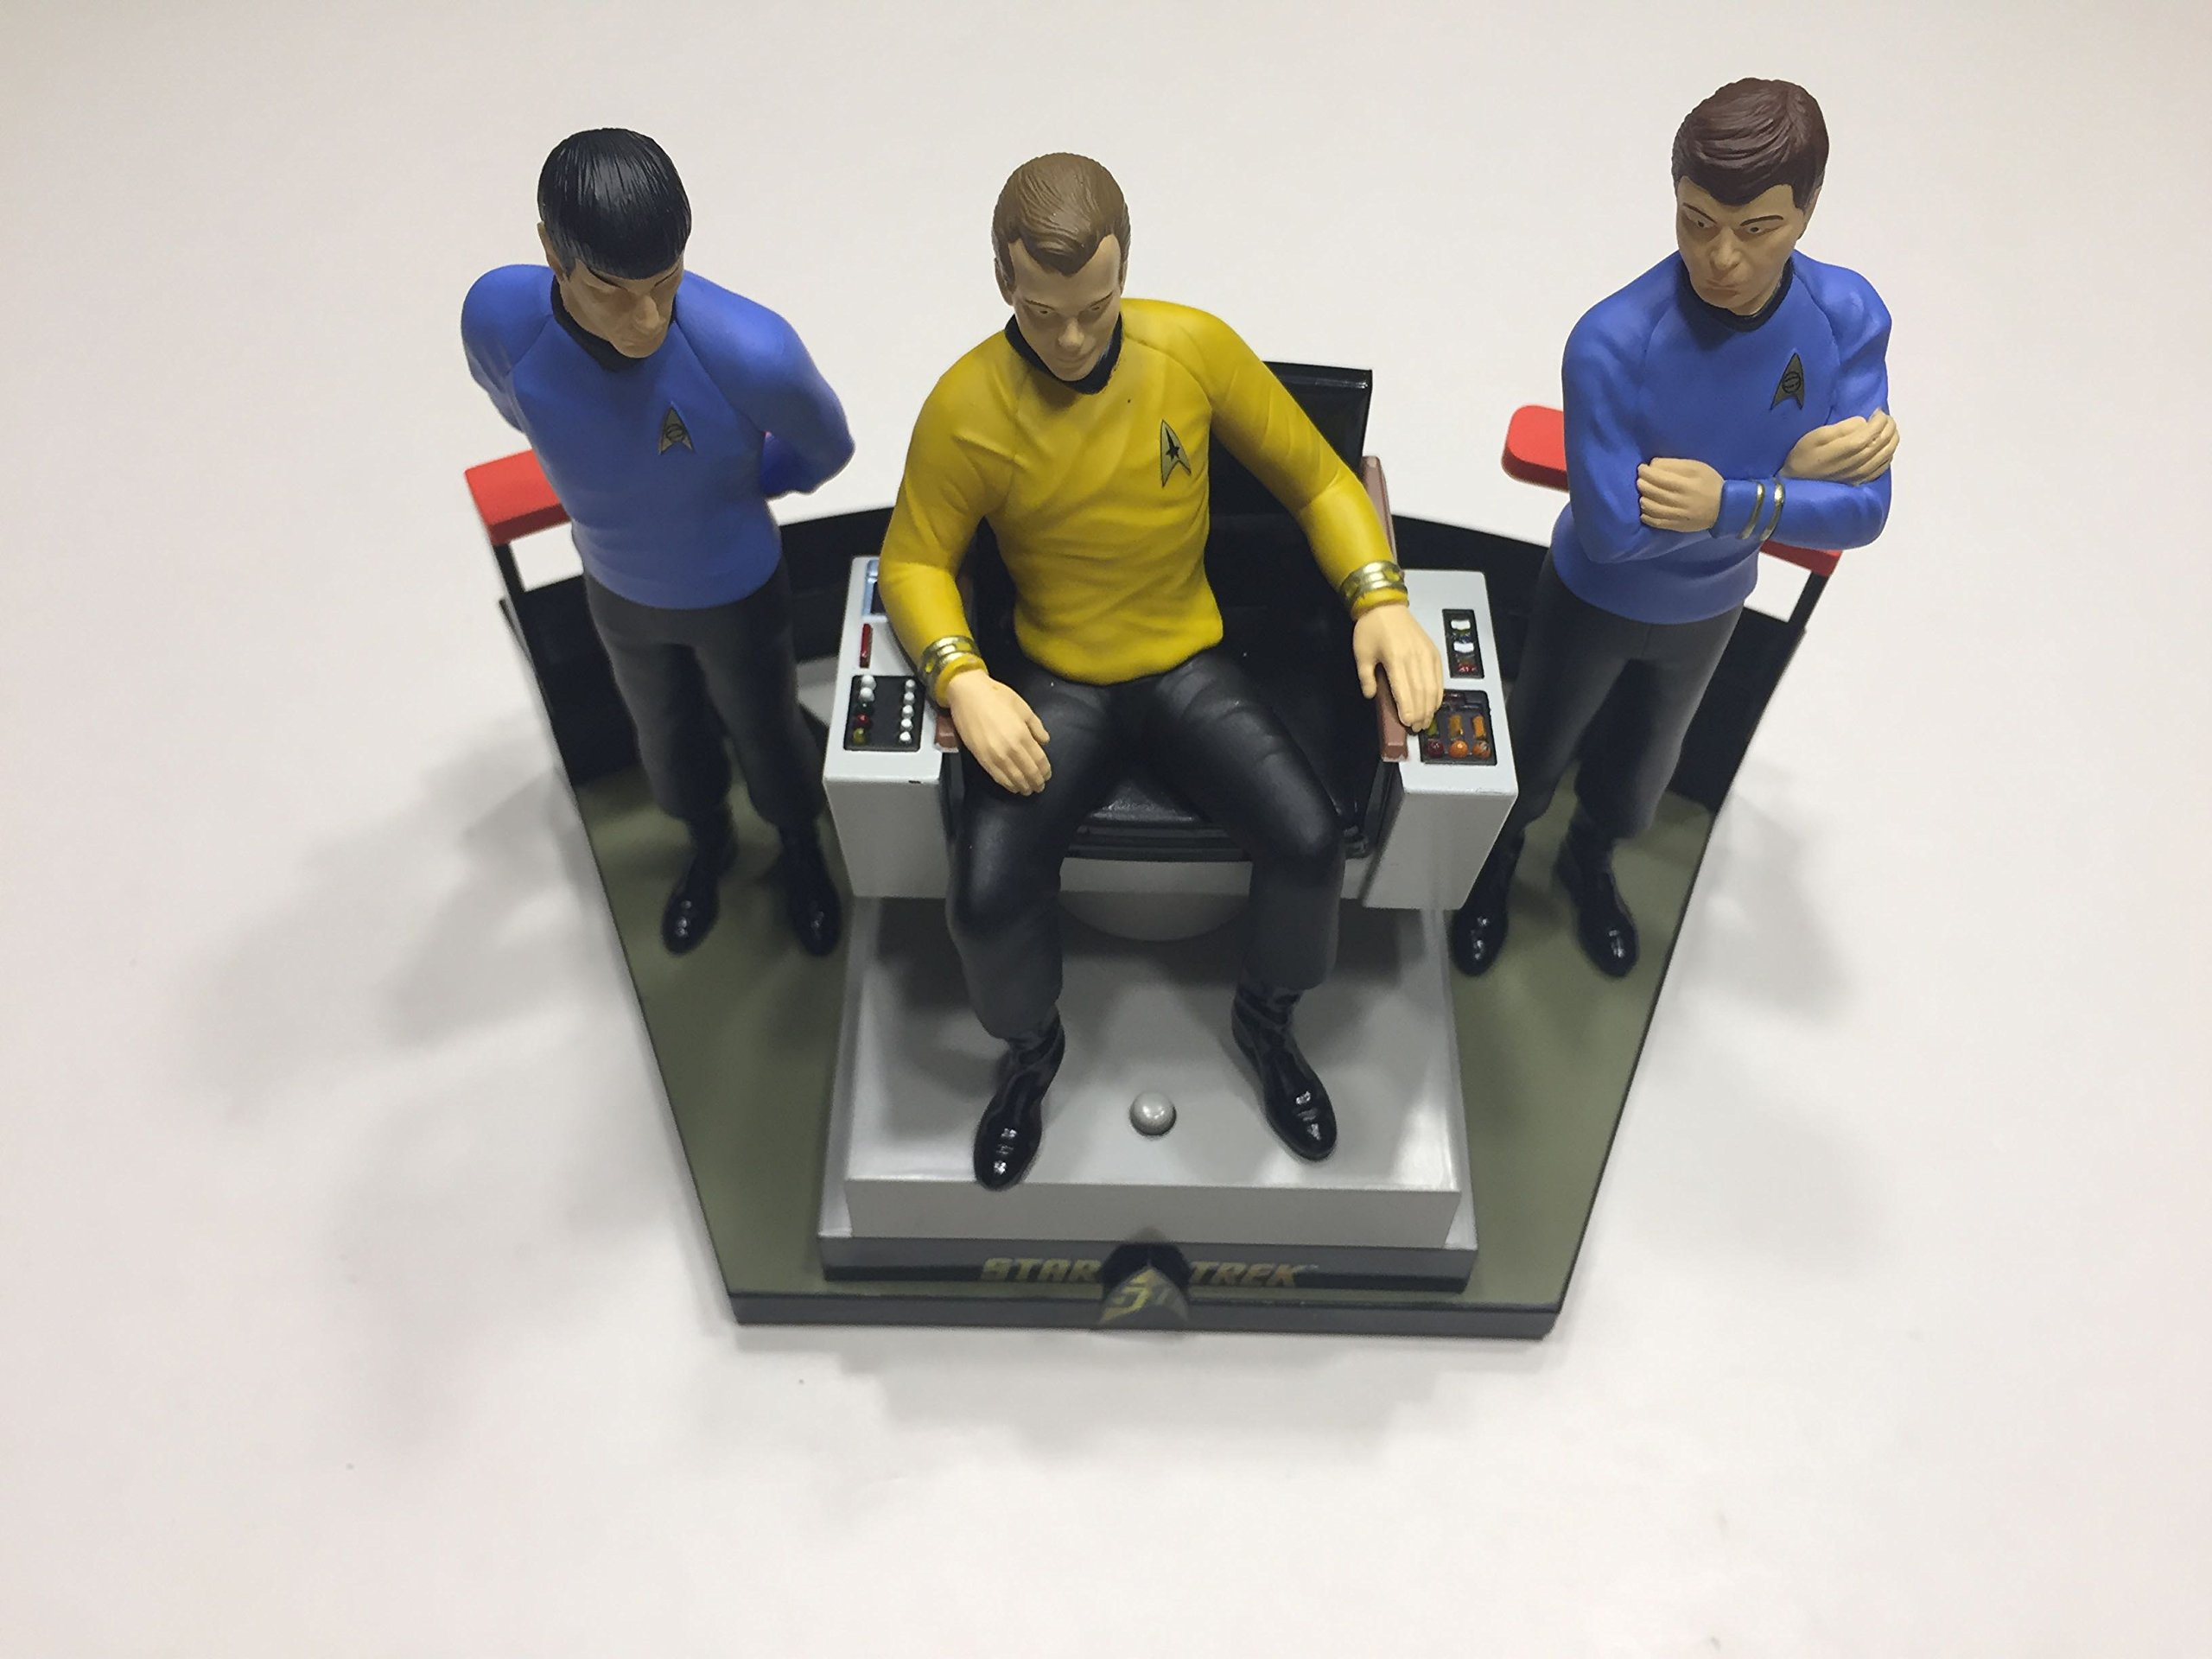 Hallmark 2016 Christmas Ornament STAR TREK™ 50th Anniversary To Boldly Go Tabletop Decoration With Light and Sound